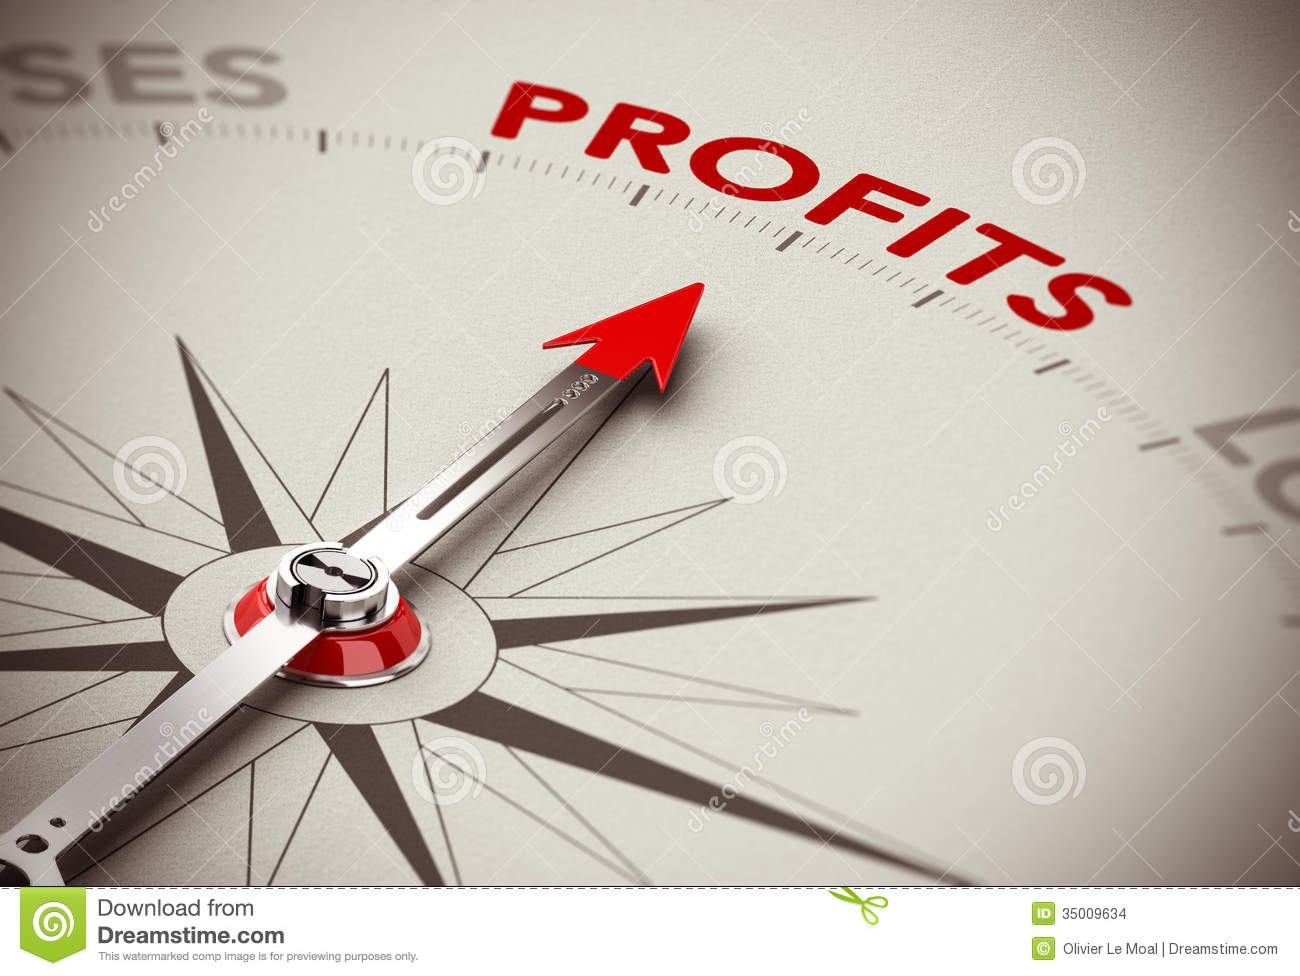 Image result for image of profits